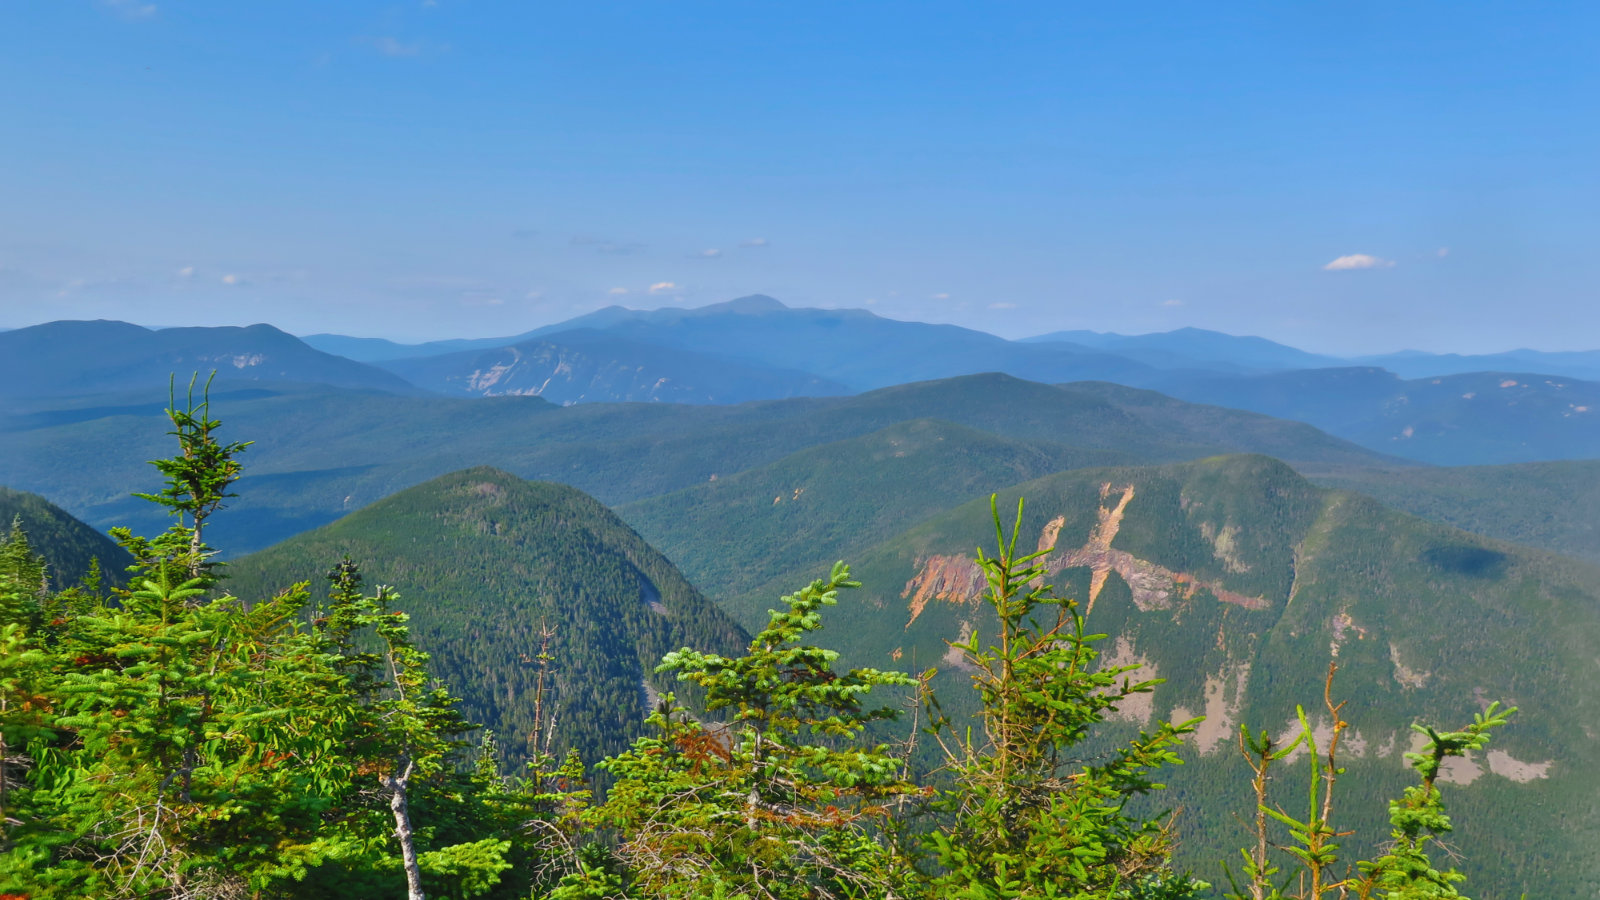 Signal_Ridge_View_Carrigain_20190803